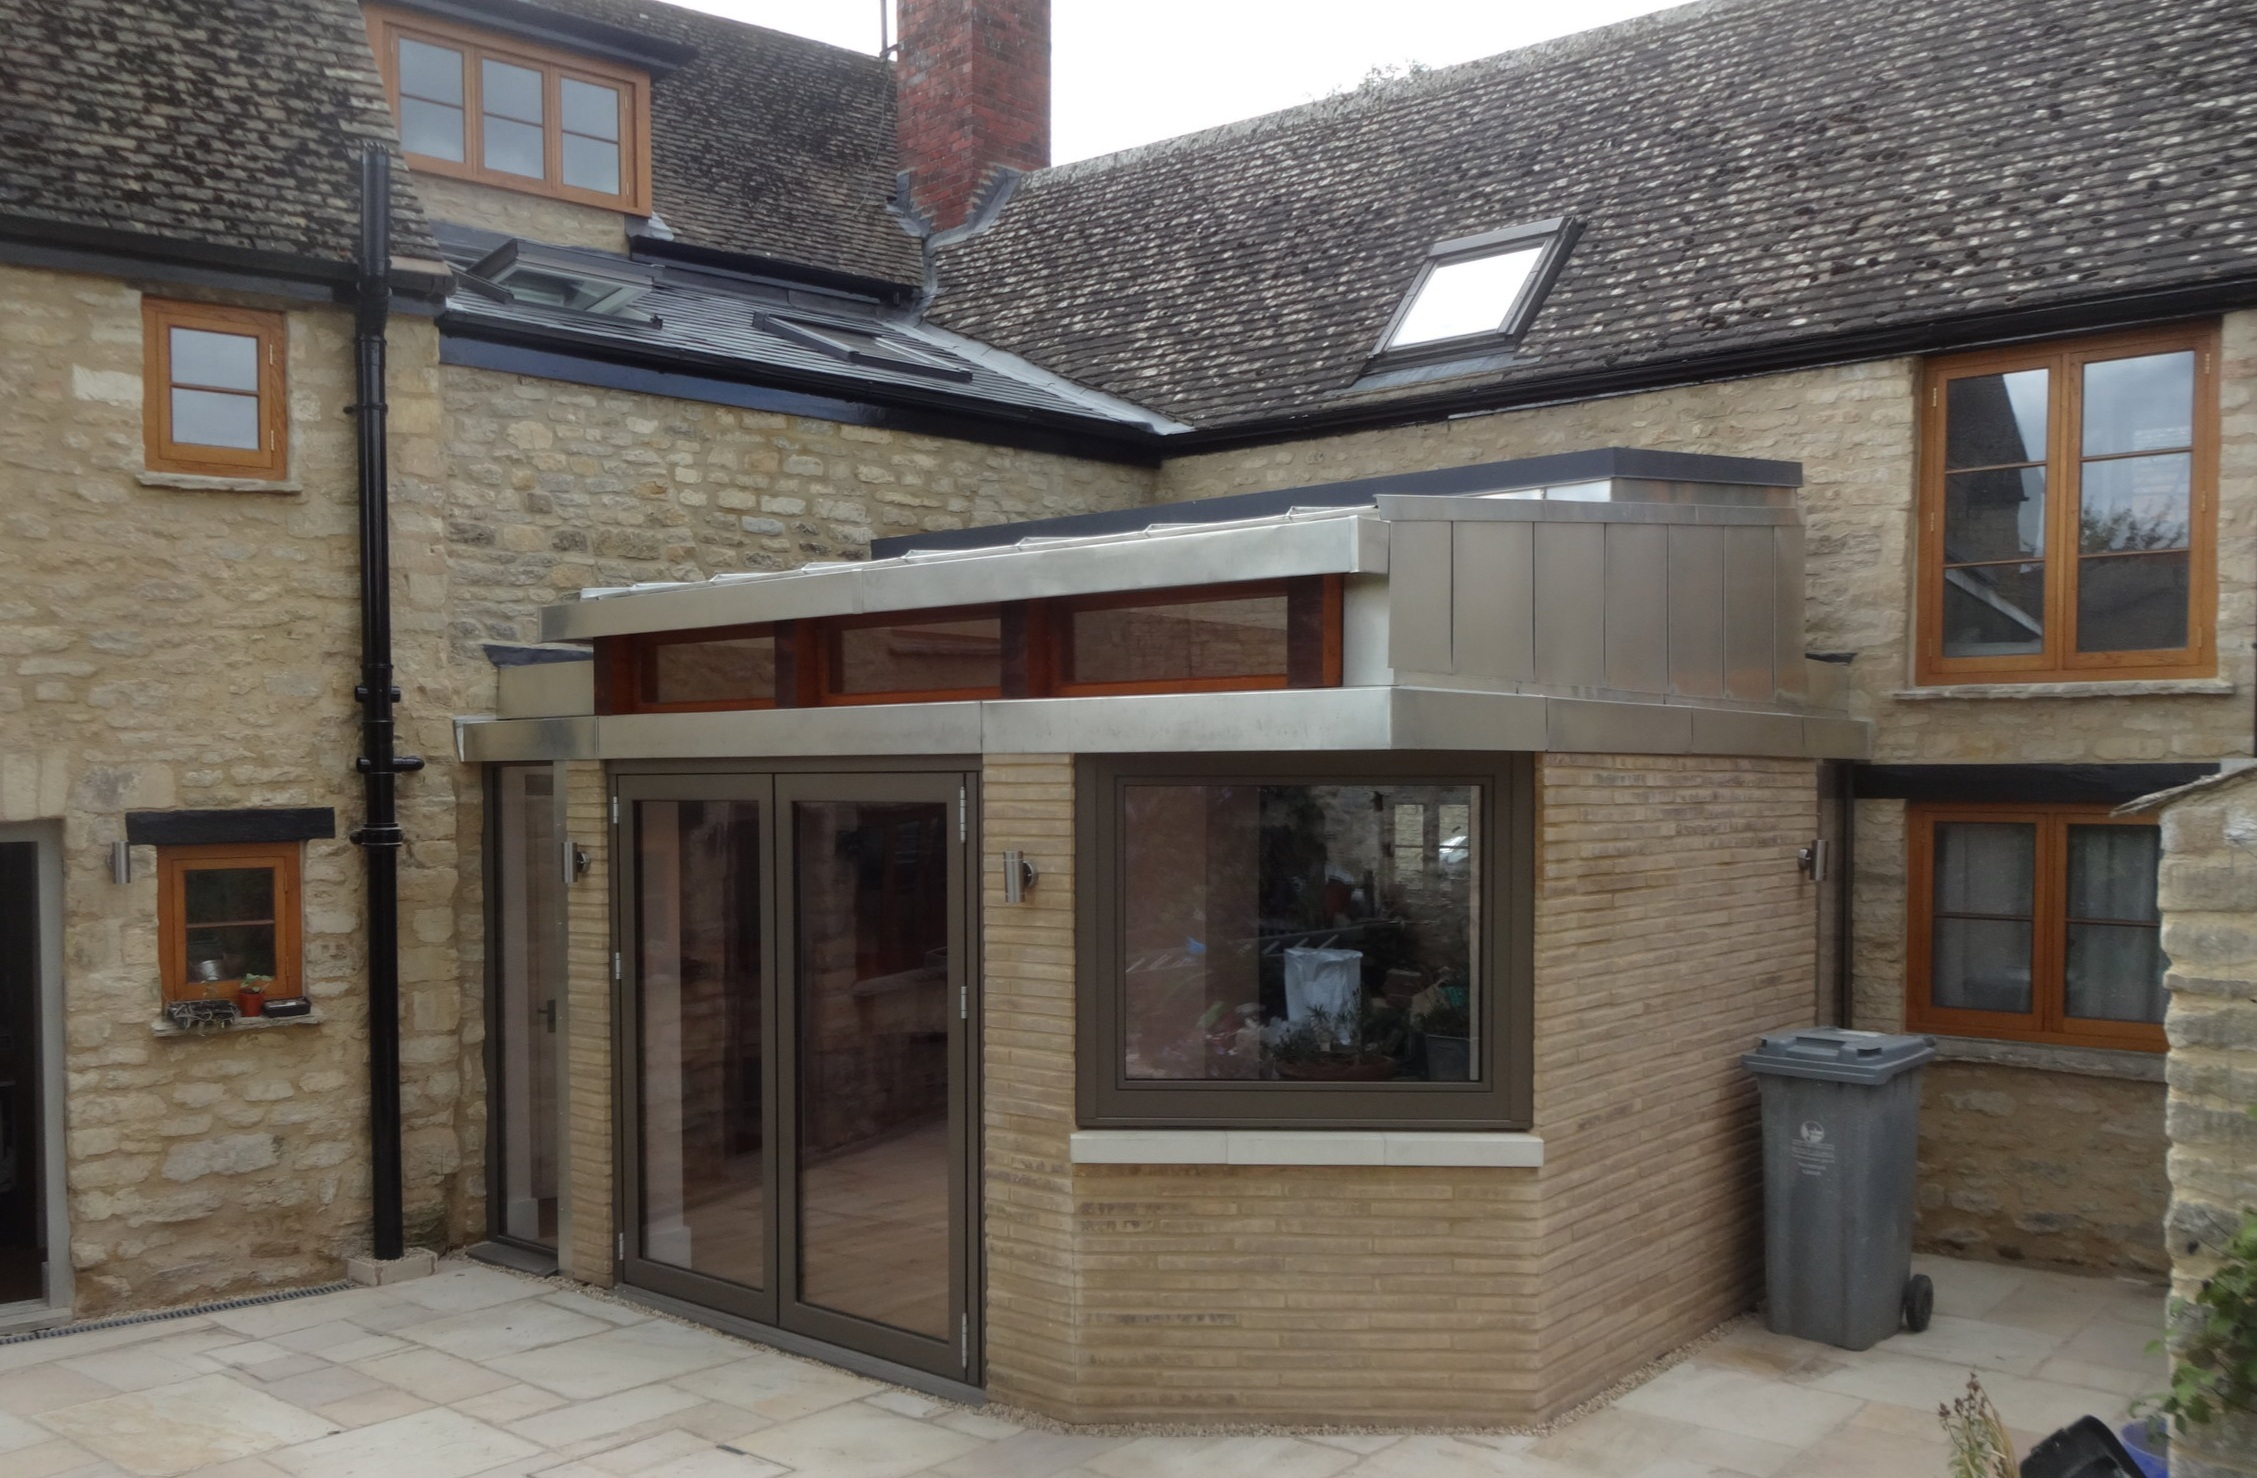 MALTSHOVEL HOUSE - This quirky extension uses both roofing and cladding details. The new look extension in Eynsham fits into a courtyard garden brilliantly against the old existing building.